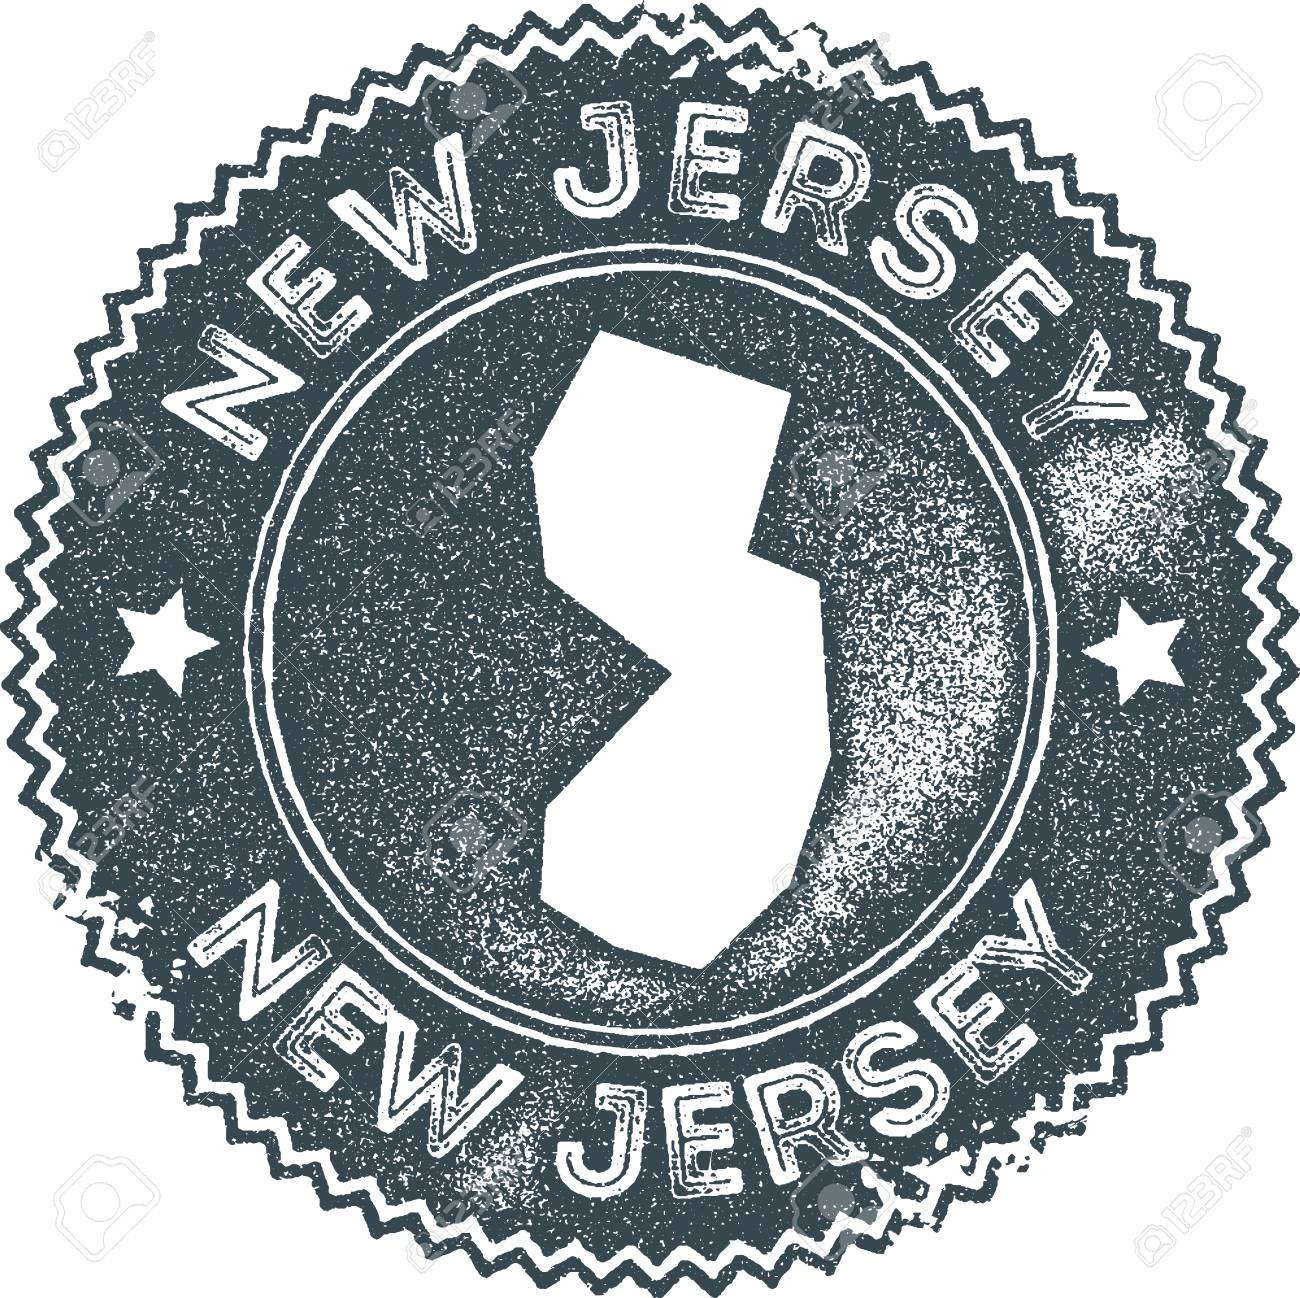 New Jersey Map Vintage Stamp Retro Style Handmade Label Badge Or Element For Travel